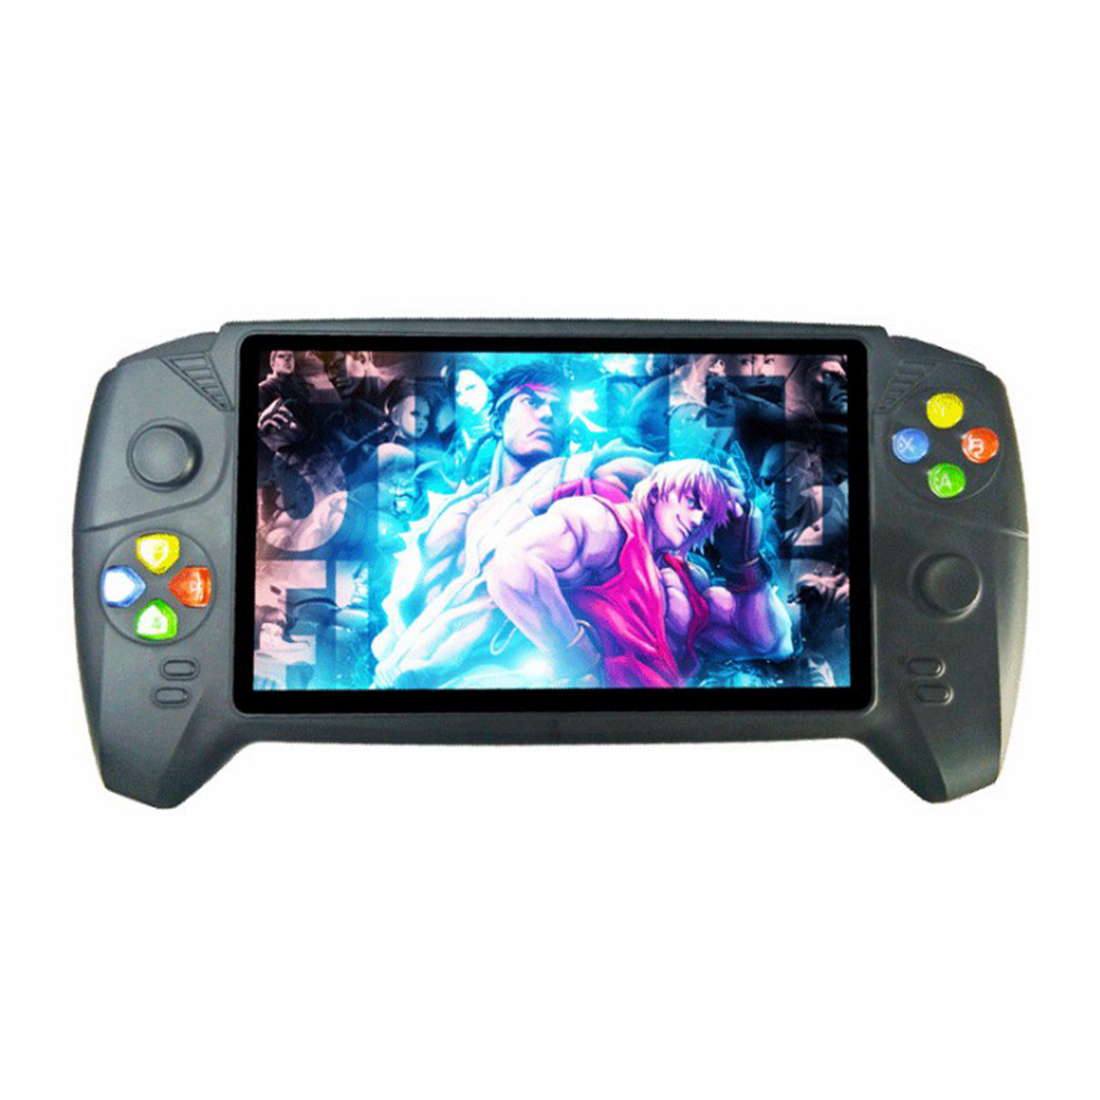 Coolboy Handheld HD Video Game Console Double Joystick 7-Inch